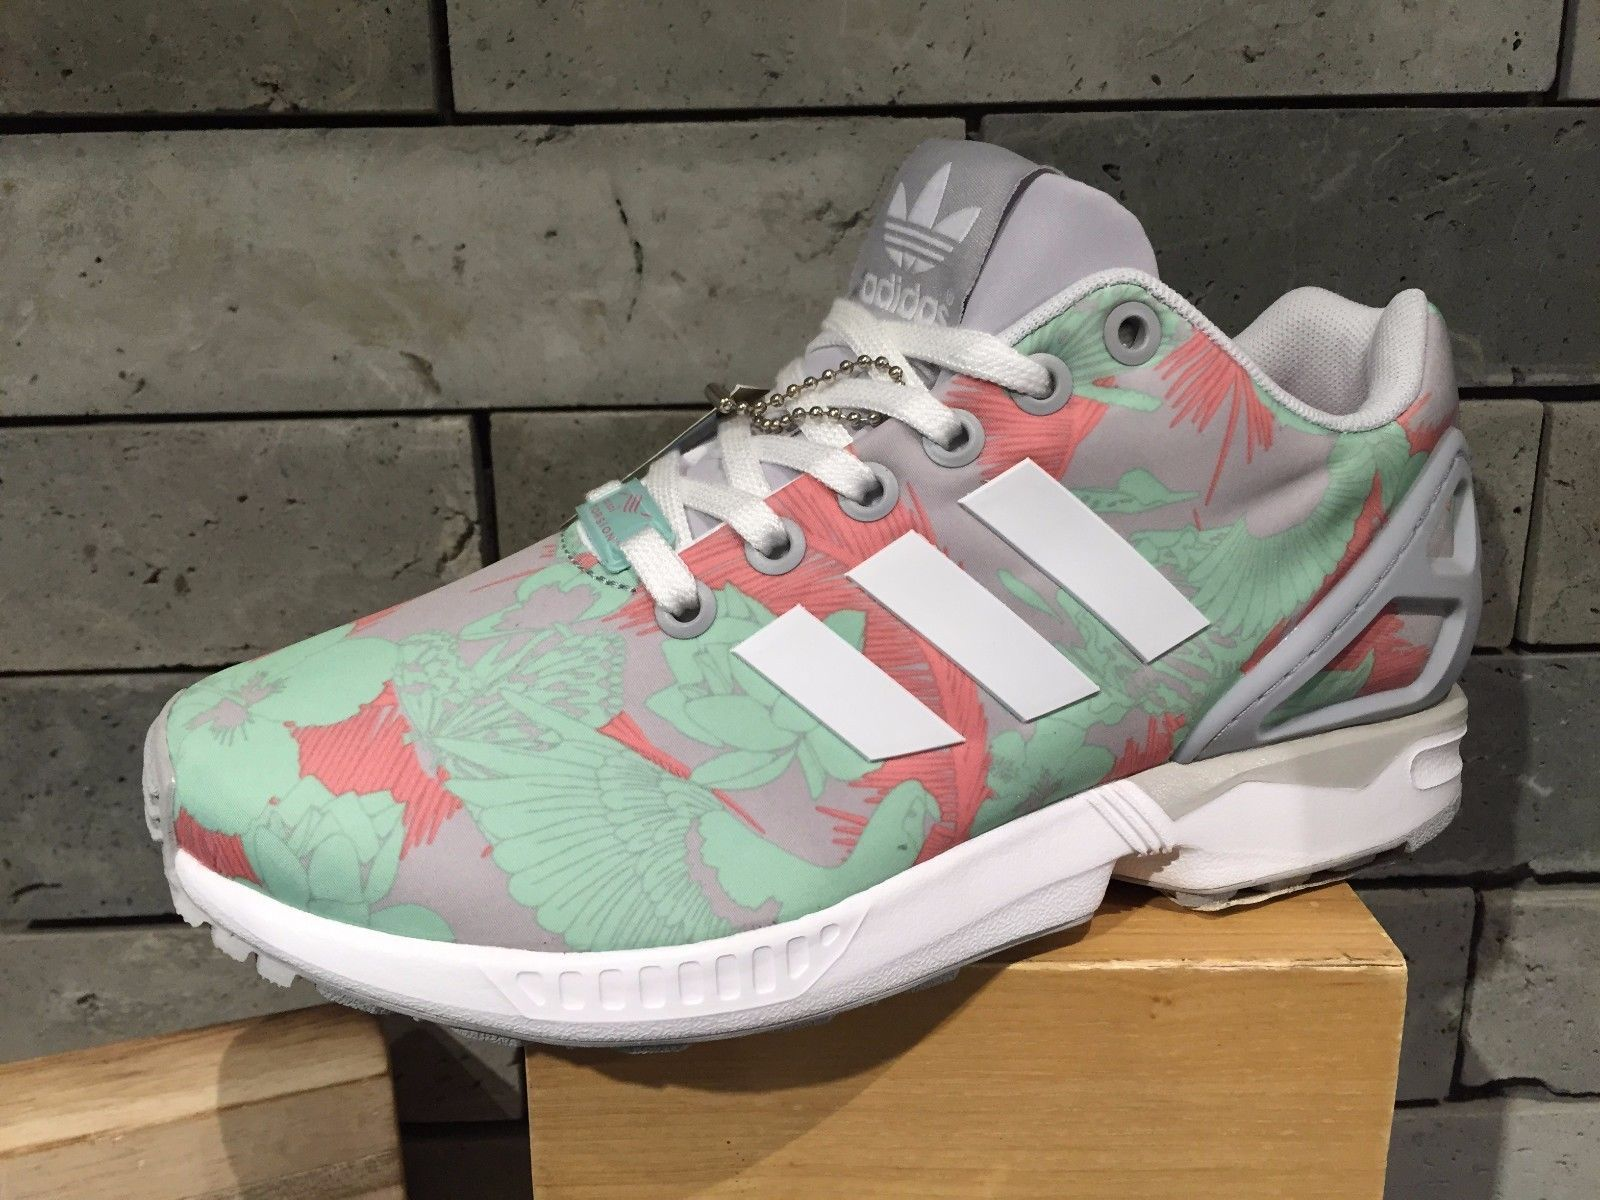 91da78f5e35c Adidas Originals ZX Flux W Grey Green Floral Print M19456  199.00 ...